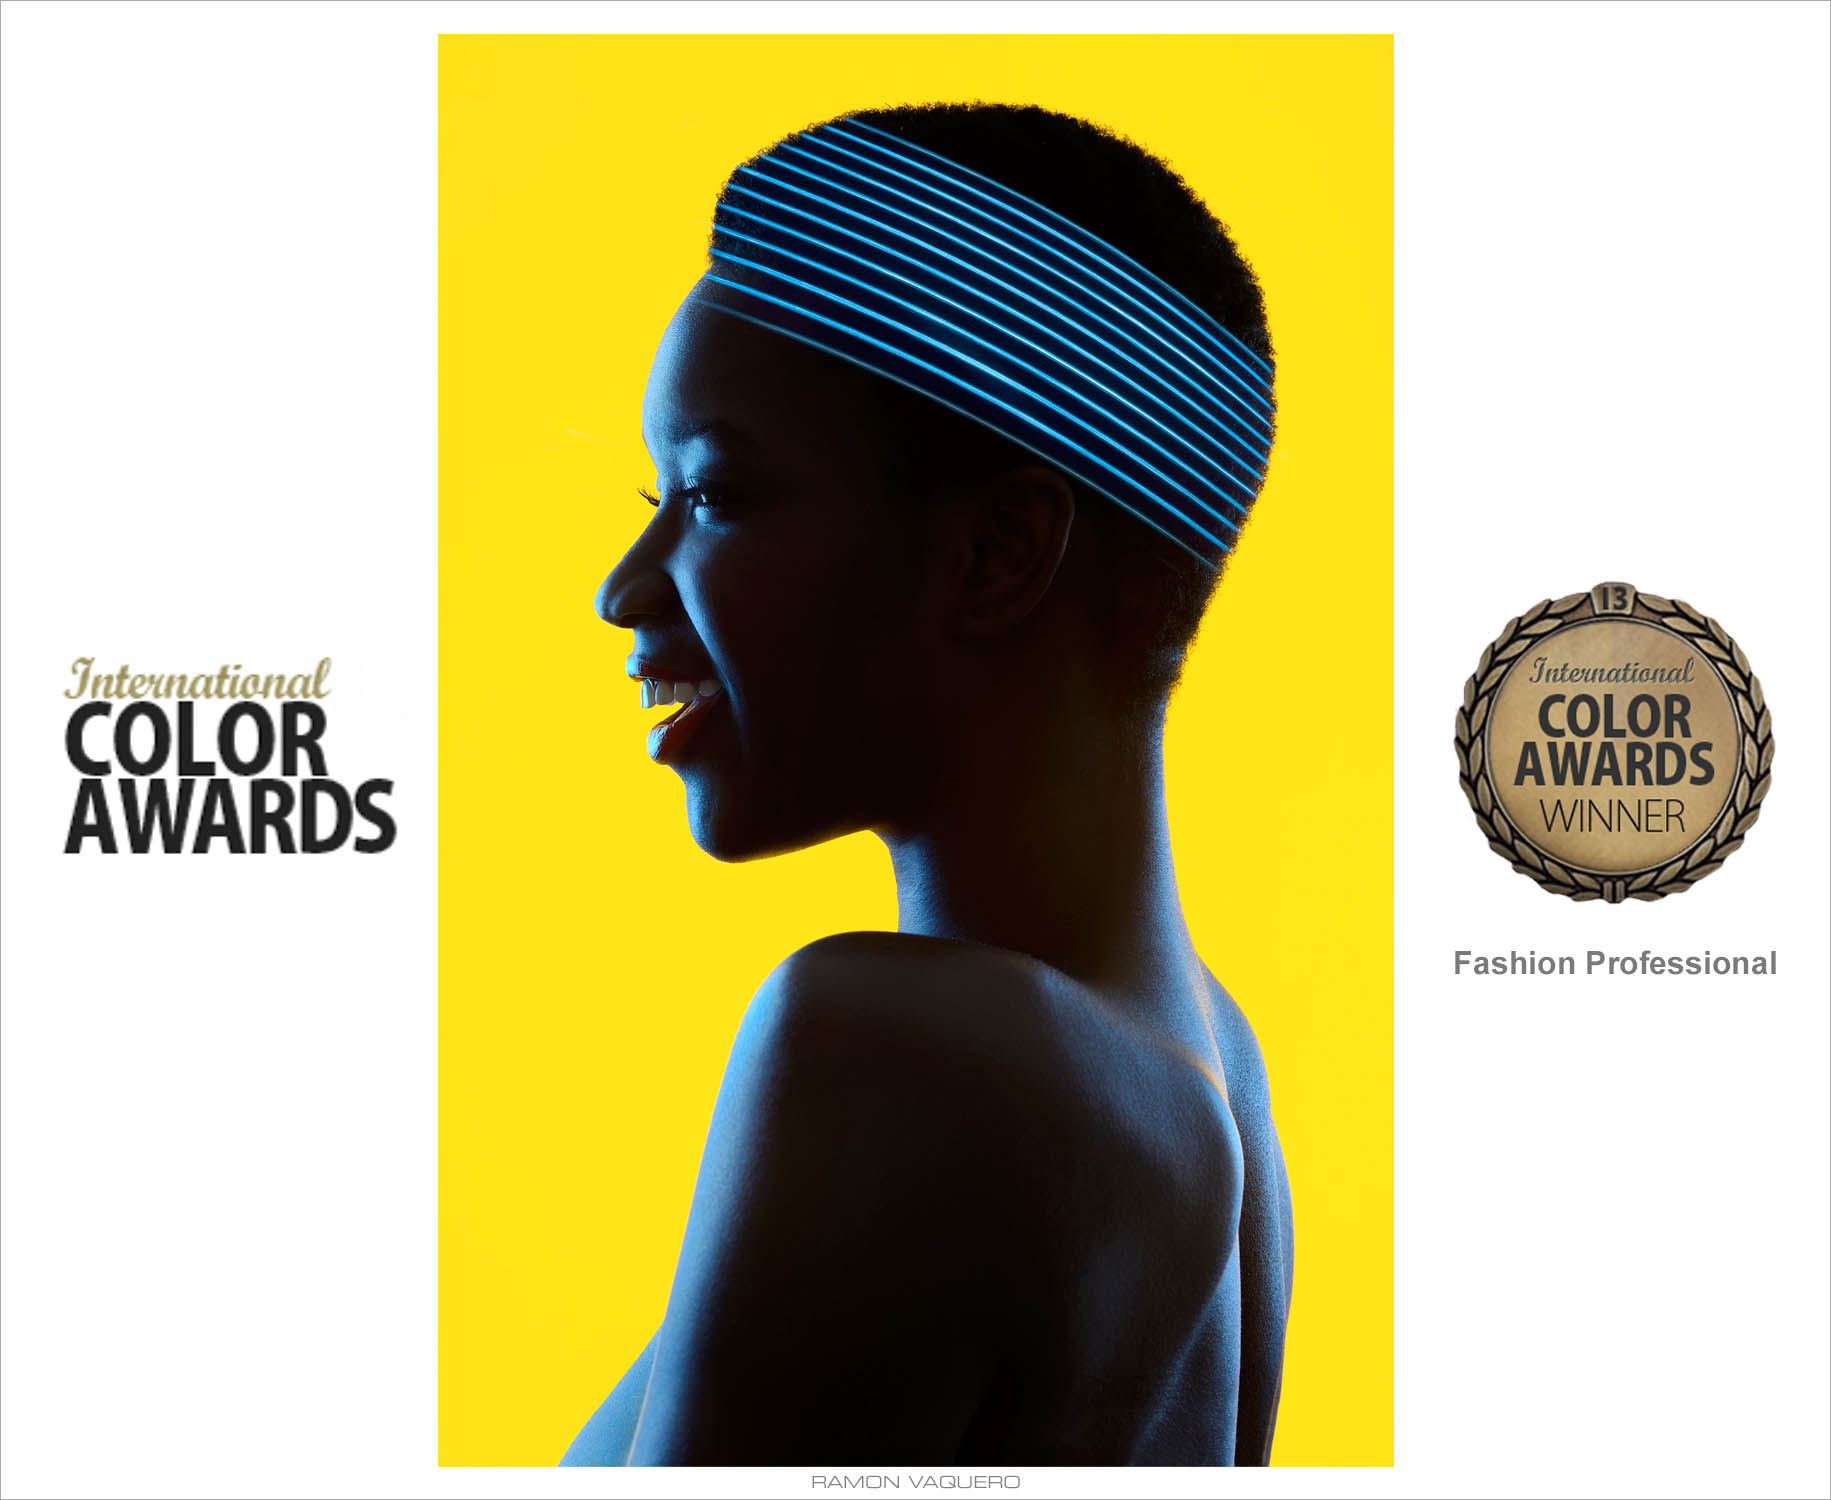 lighting-hat_ramon vaquero_colorawards_2020_fashion